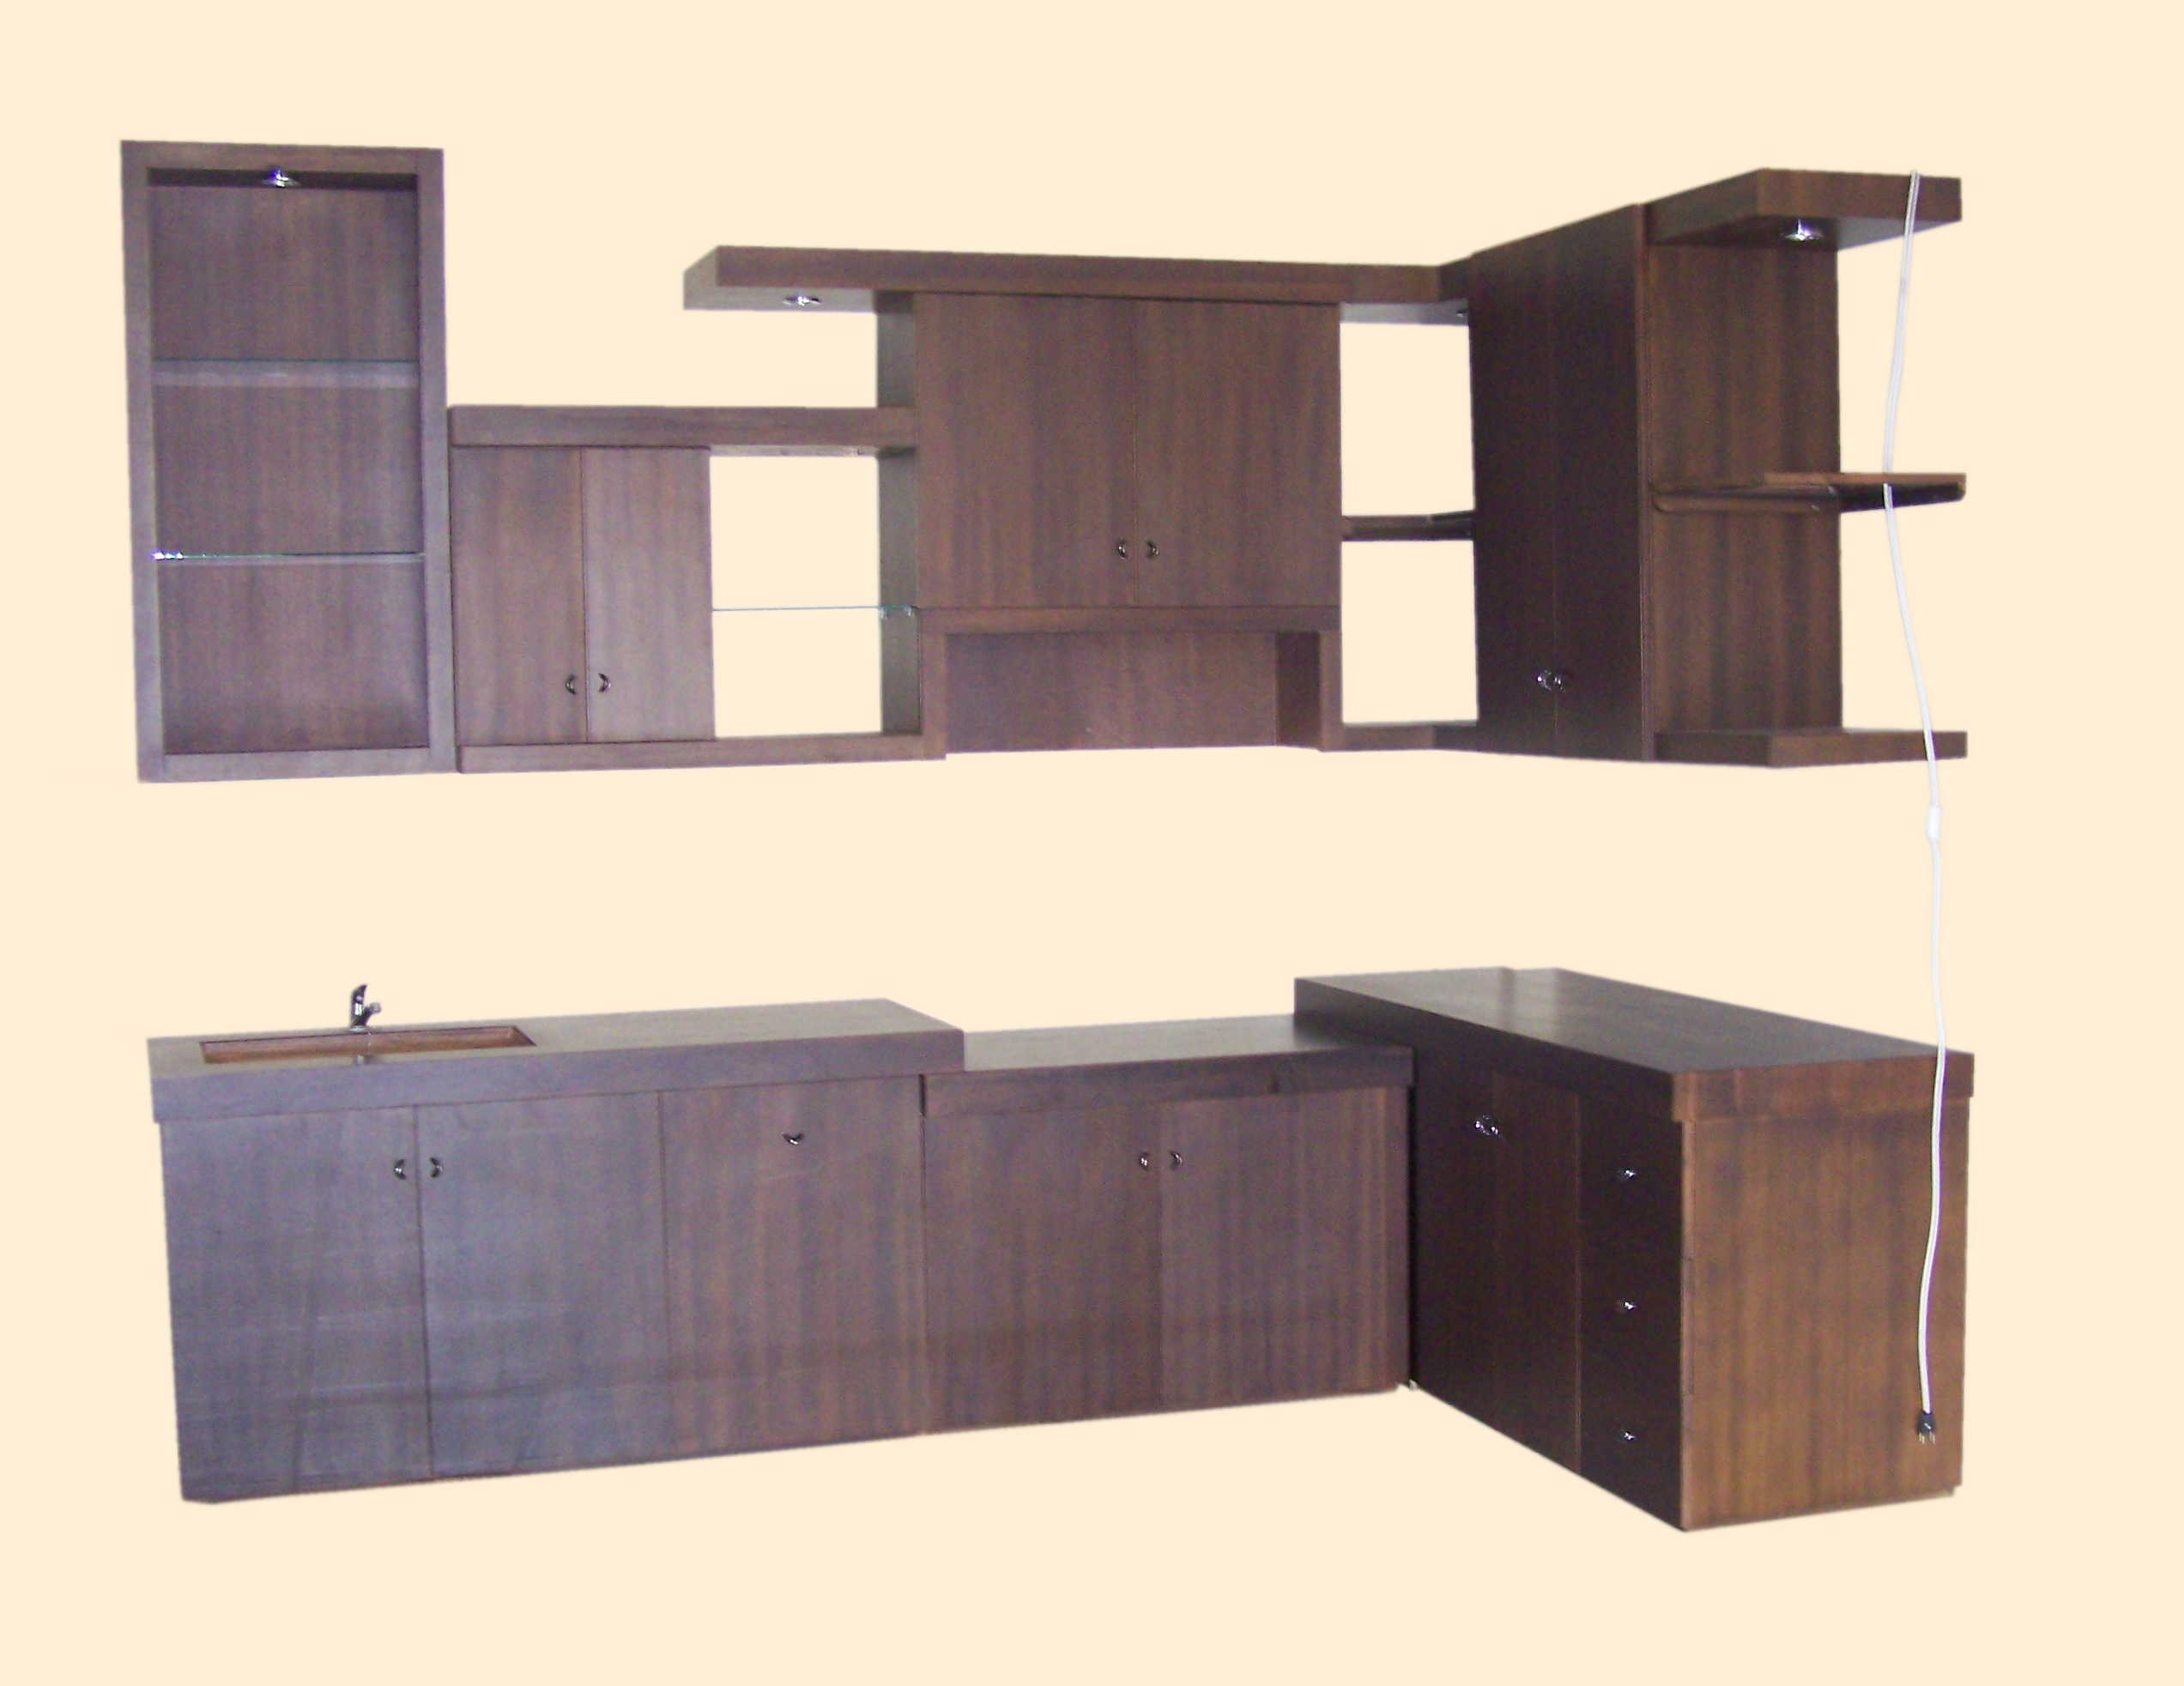 KT03%20KITCHEN%20SET%20BARU%20TEAK%20BLOCK.JPG